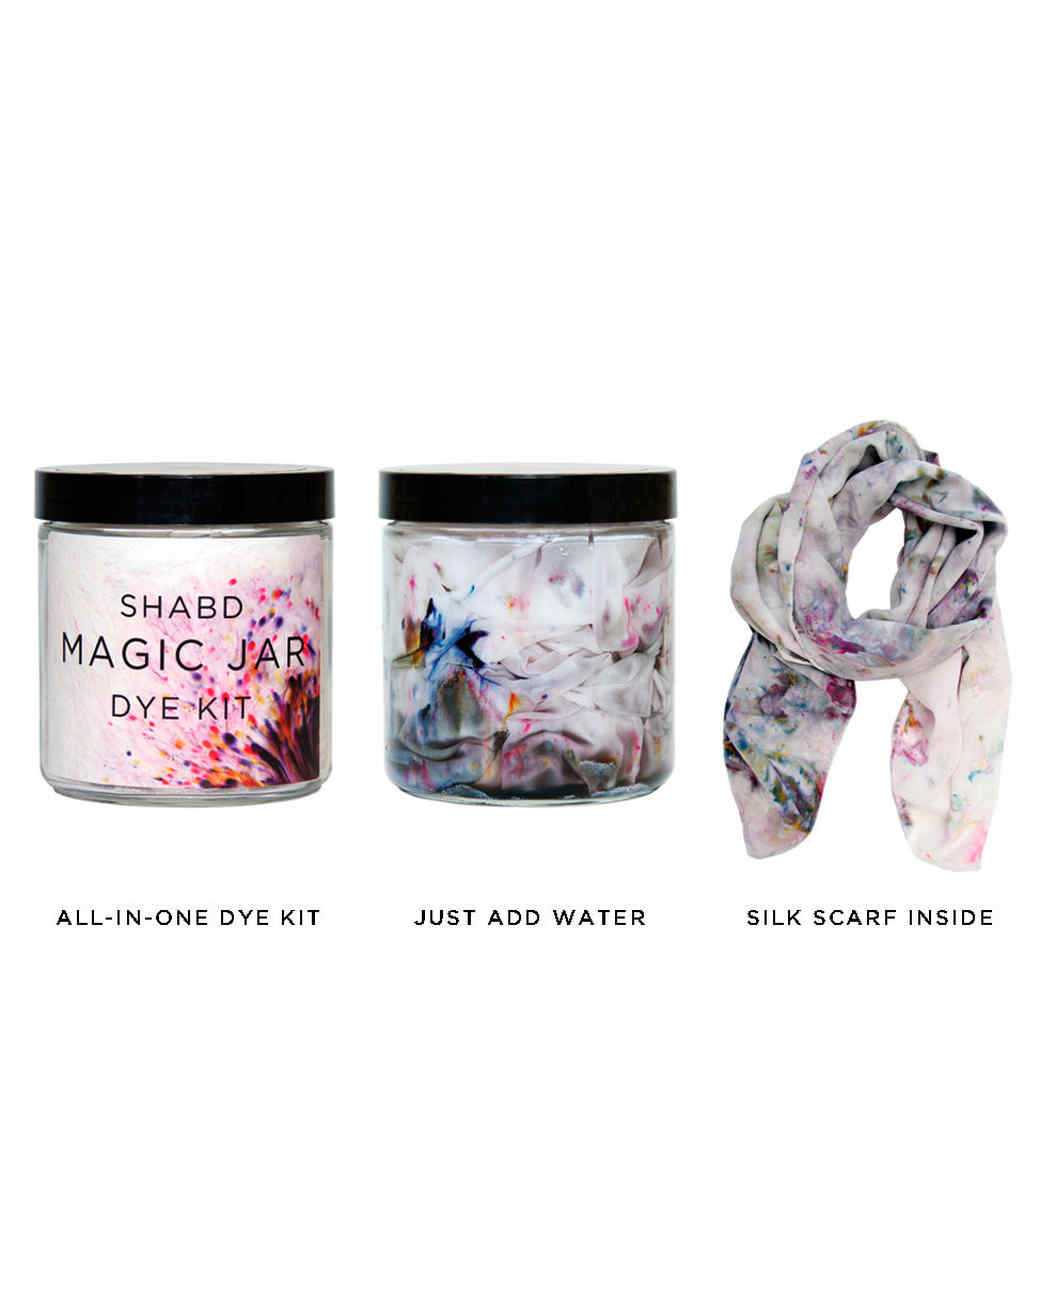 shabd-magic-jar-dye-kit-0915.jpg